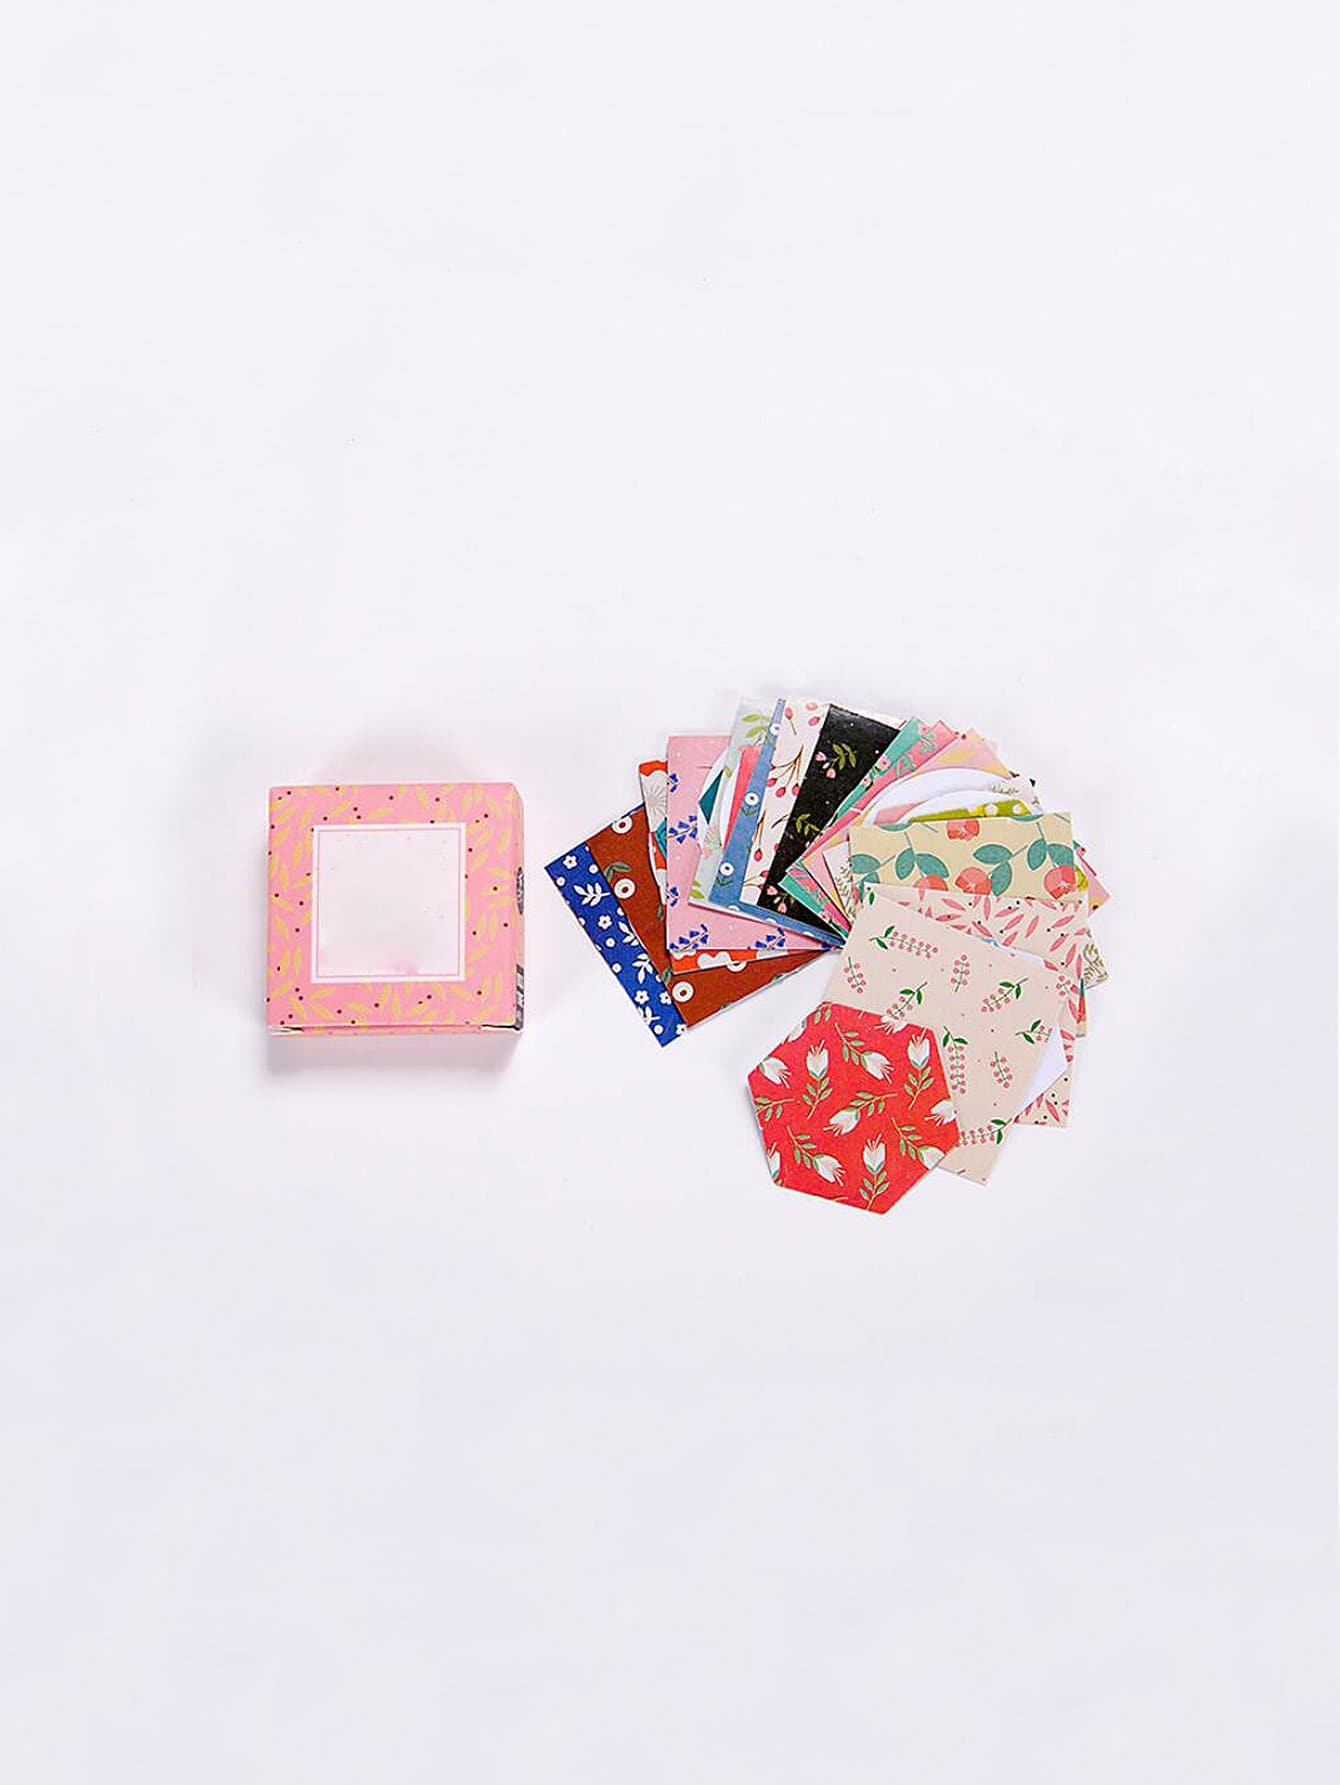 Floral Sticky Memo Pads 40sheets 40set memo pads sticky notes kawaii cute animals box paper post it daliy scrapbooking stickers office school stationery bookmark